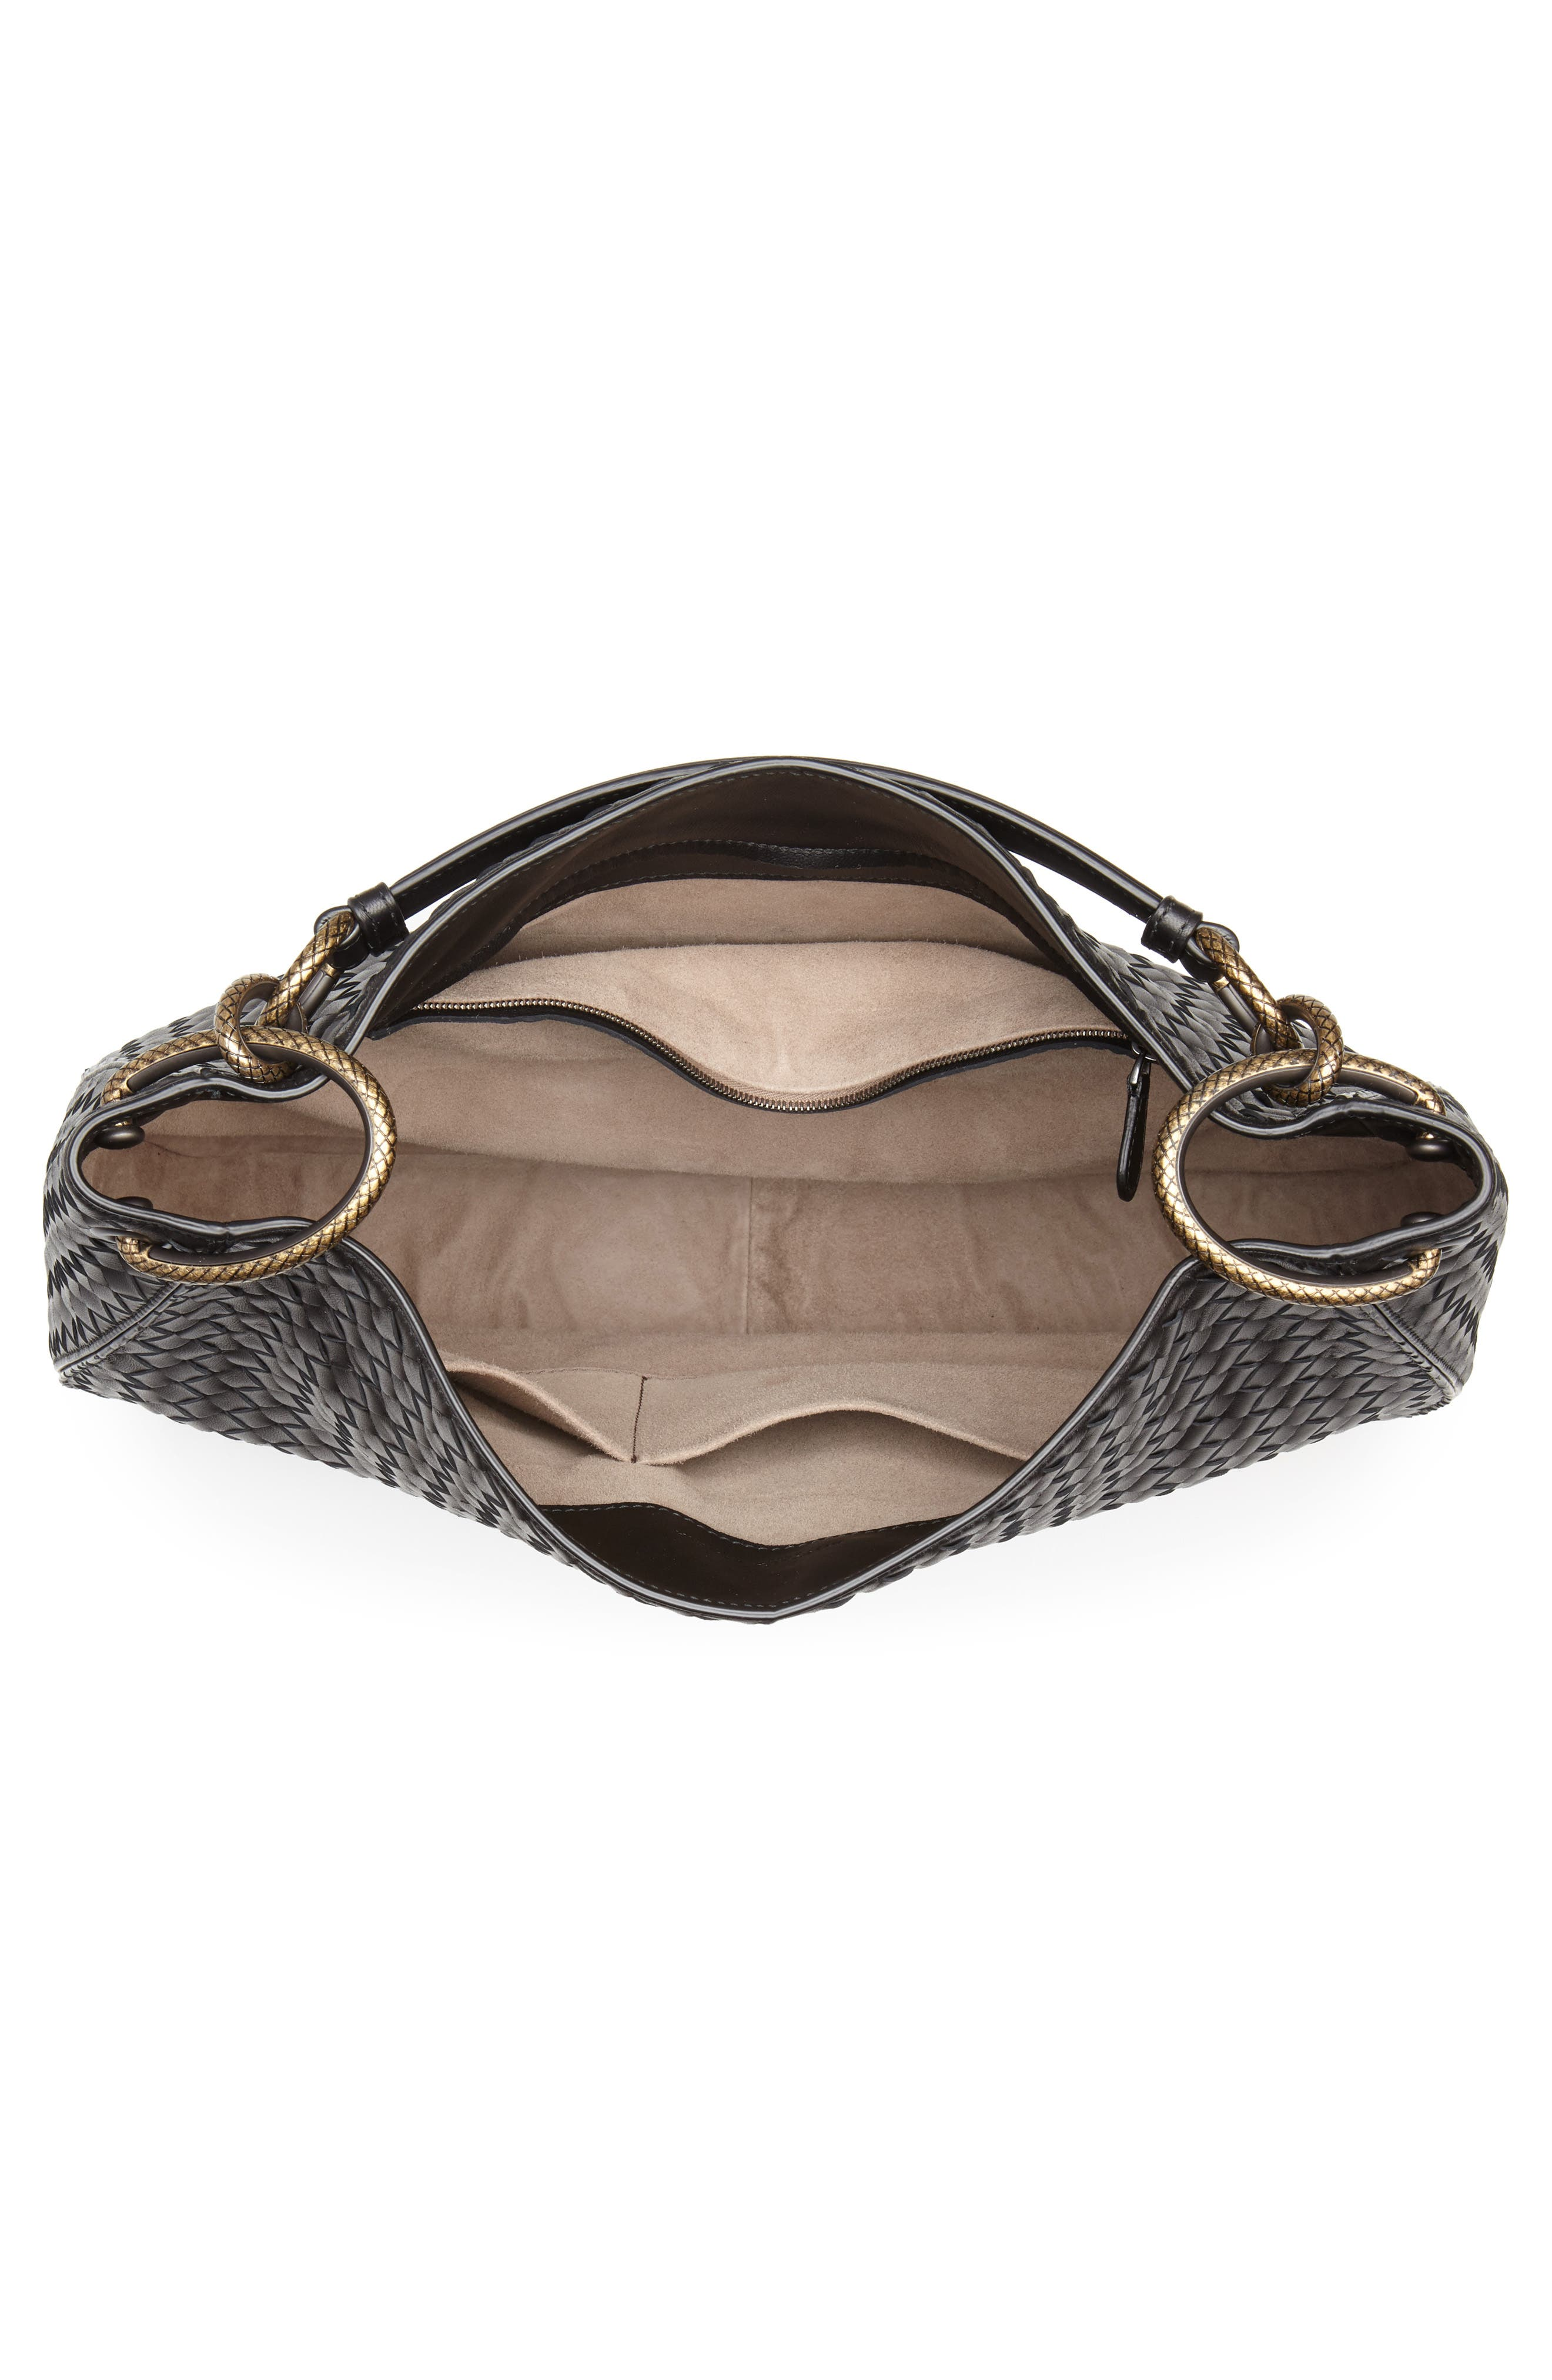 Large Loop Woven Leather Hobo,                             Alternate thumbnail 4, color,                             NERO